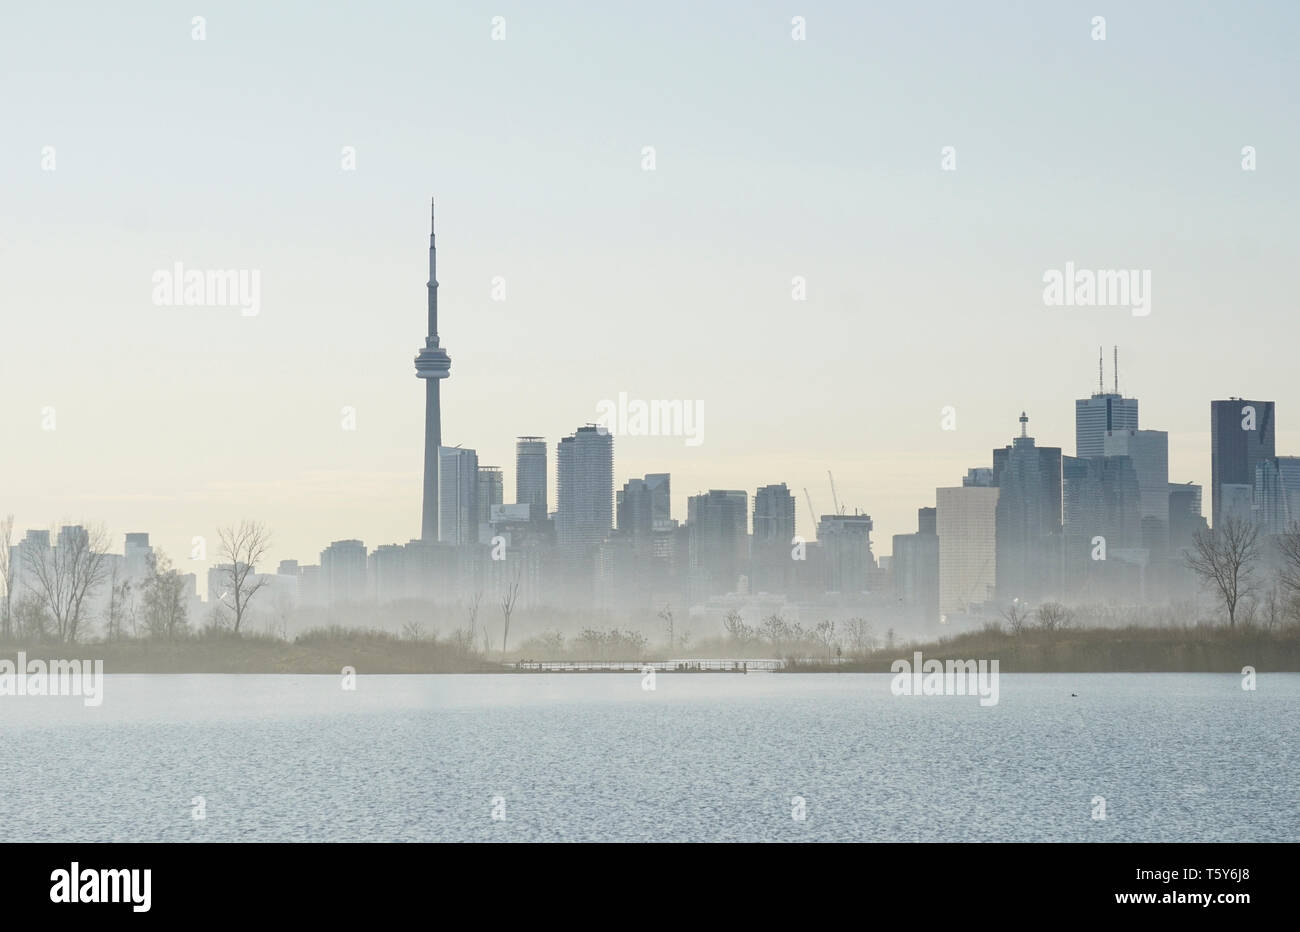 Sihouettes of Toronto waterfront landmark buildings in foggy haze in a warm spring day Stock Photo